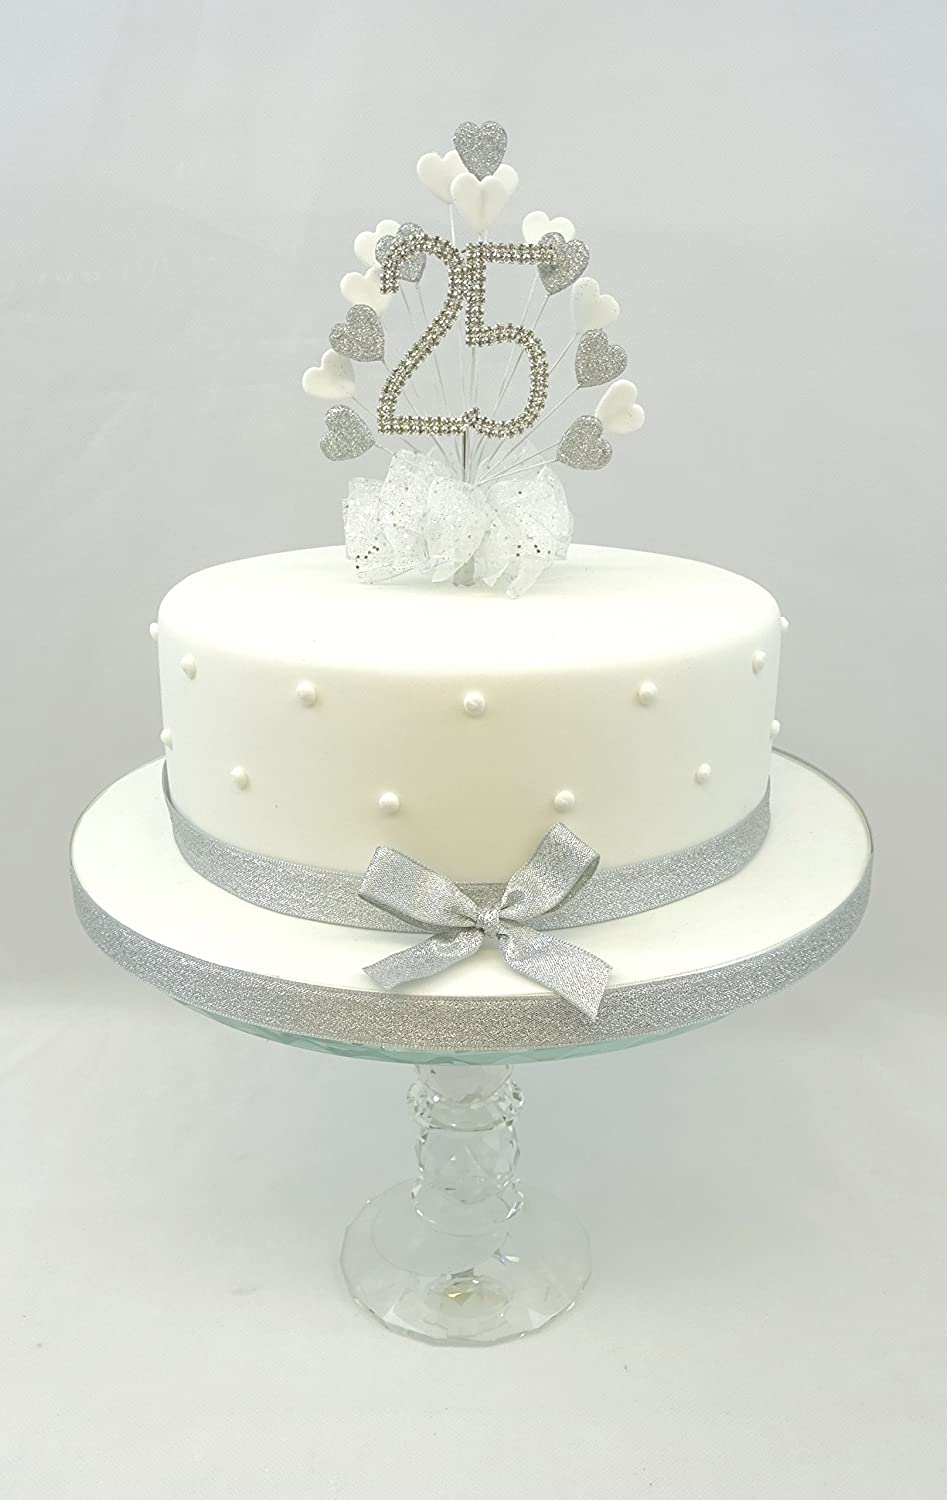 Cake Decoration 25th Silver Wedding Anniversary Diamante Number Cake Topper Heart With Matching Ribbon Pack Amazon Co Uk Grocery